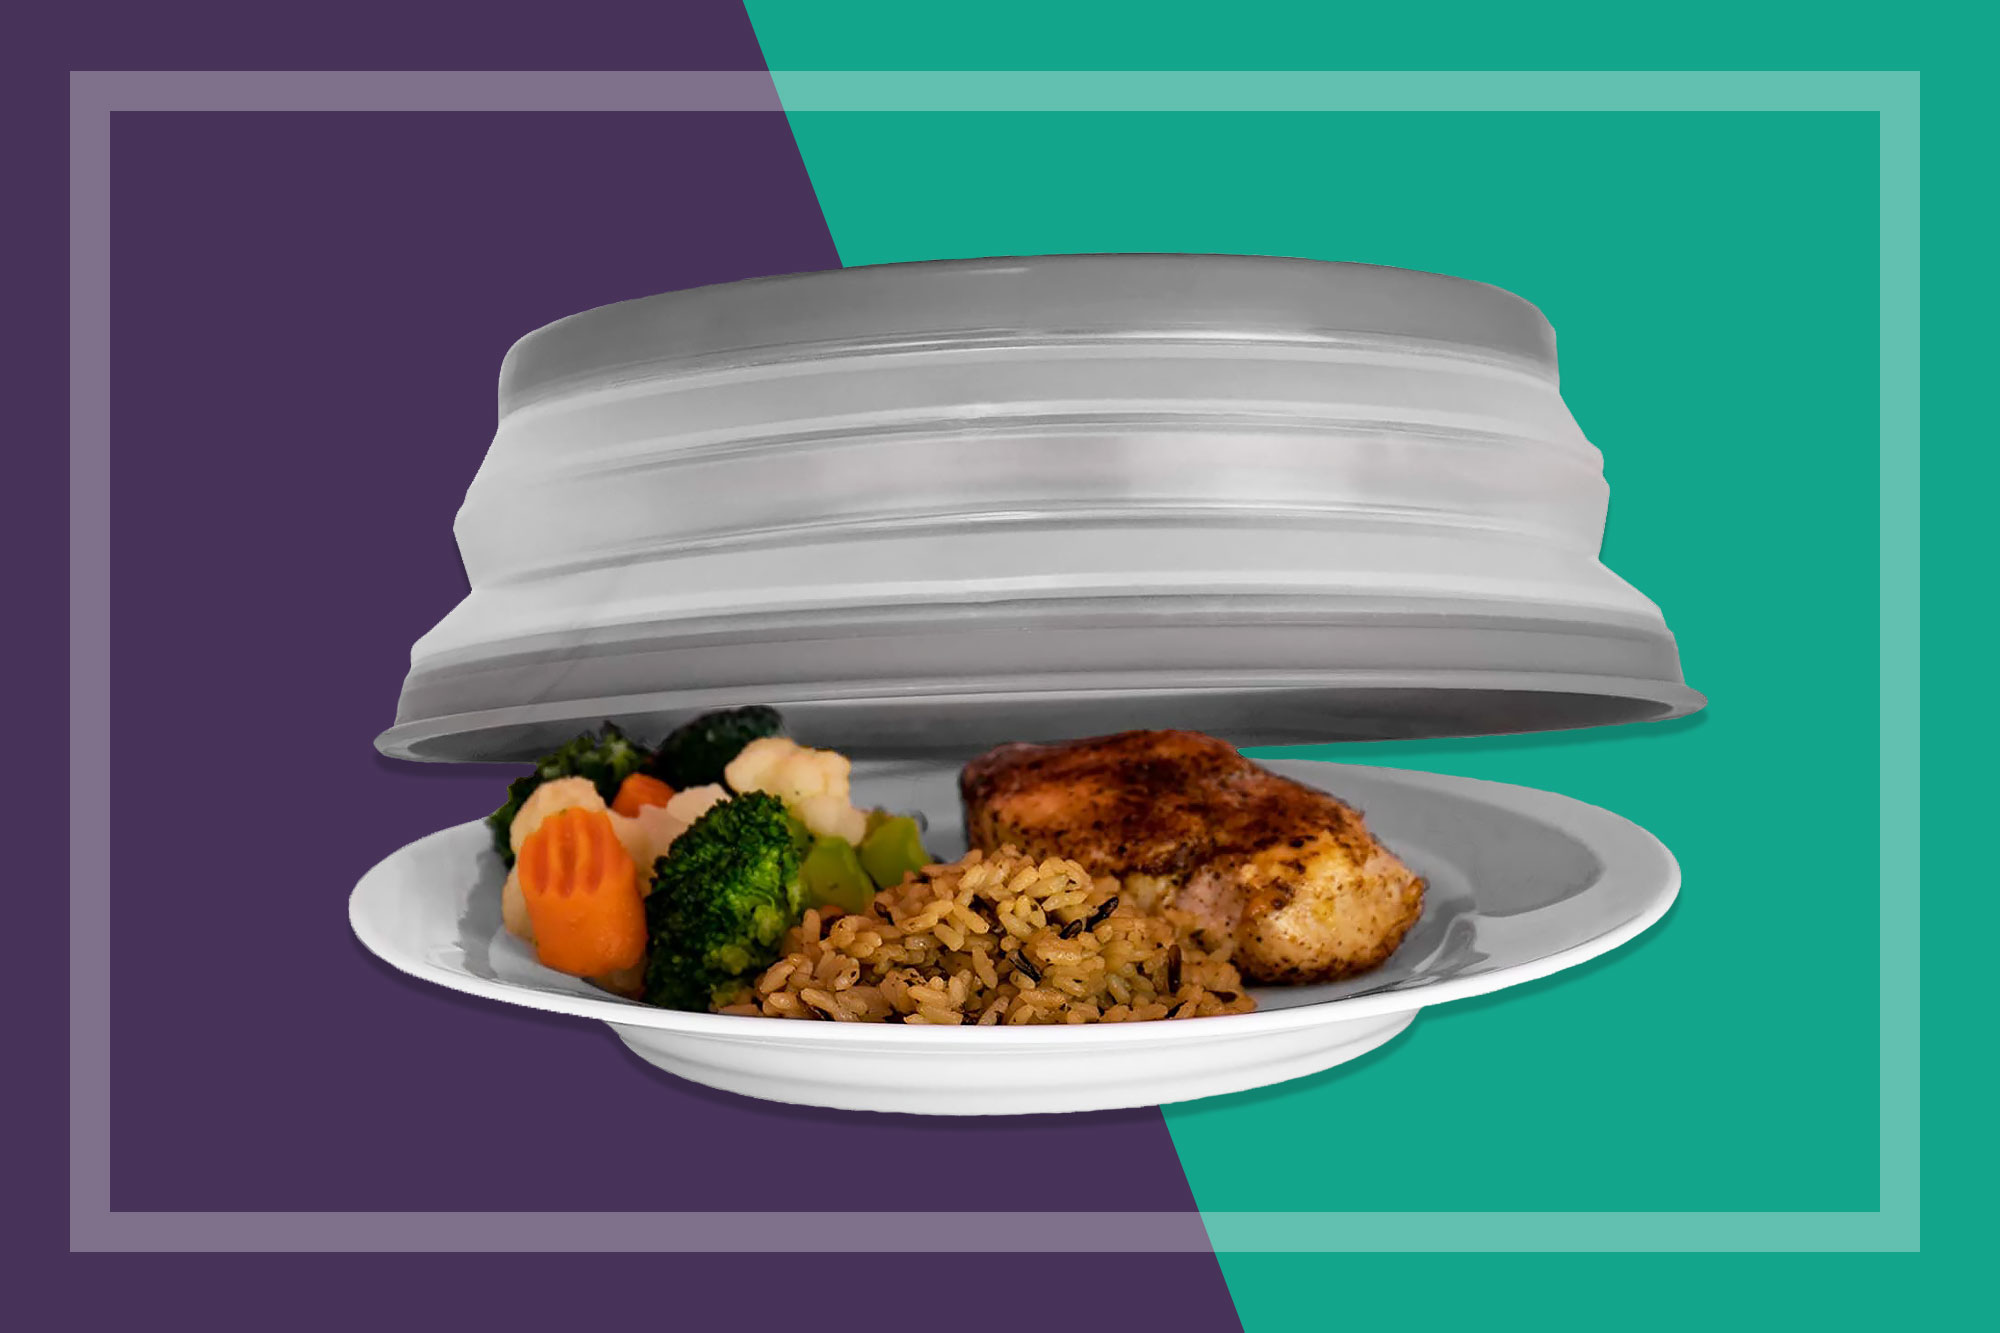 Tovolo Vented Collapsible Microwave Splatter Proof Food Plate Cover